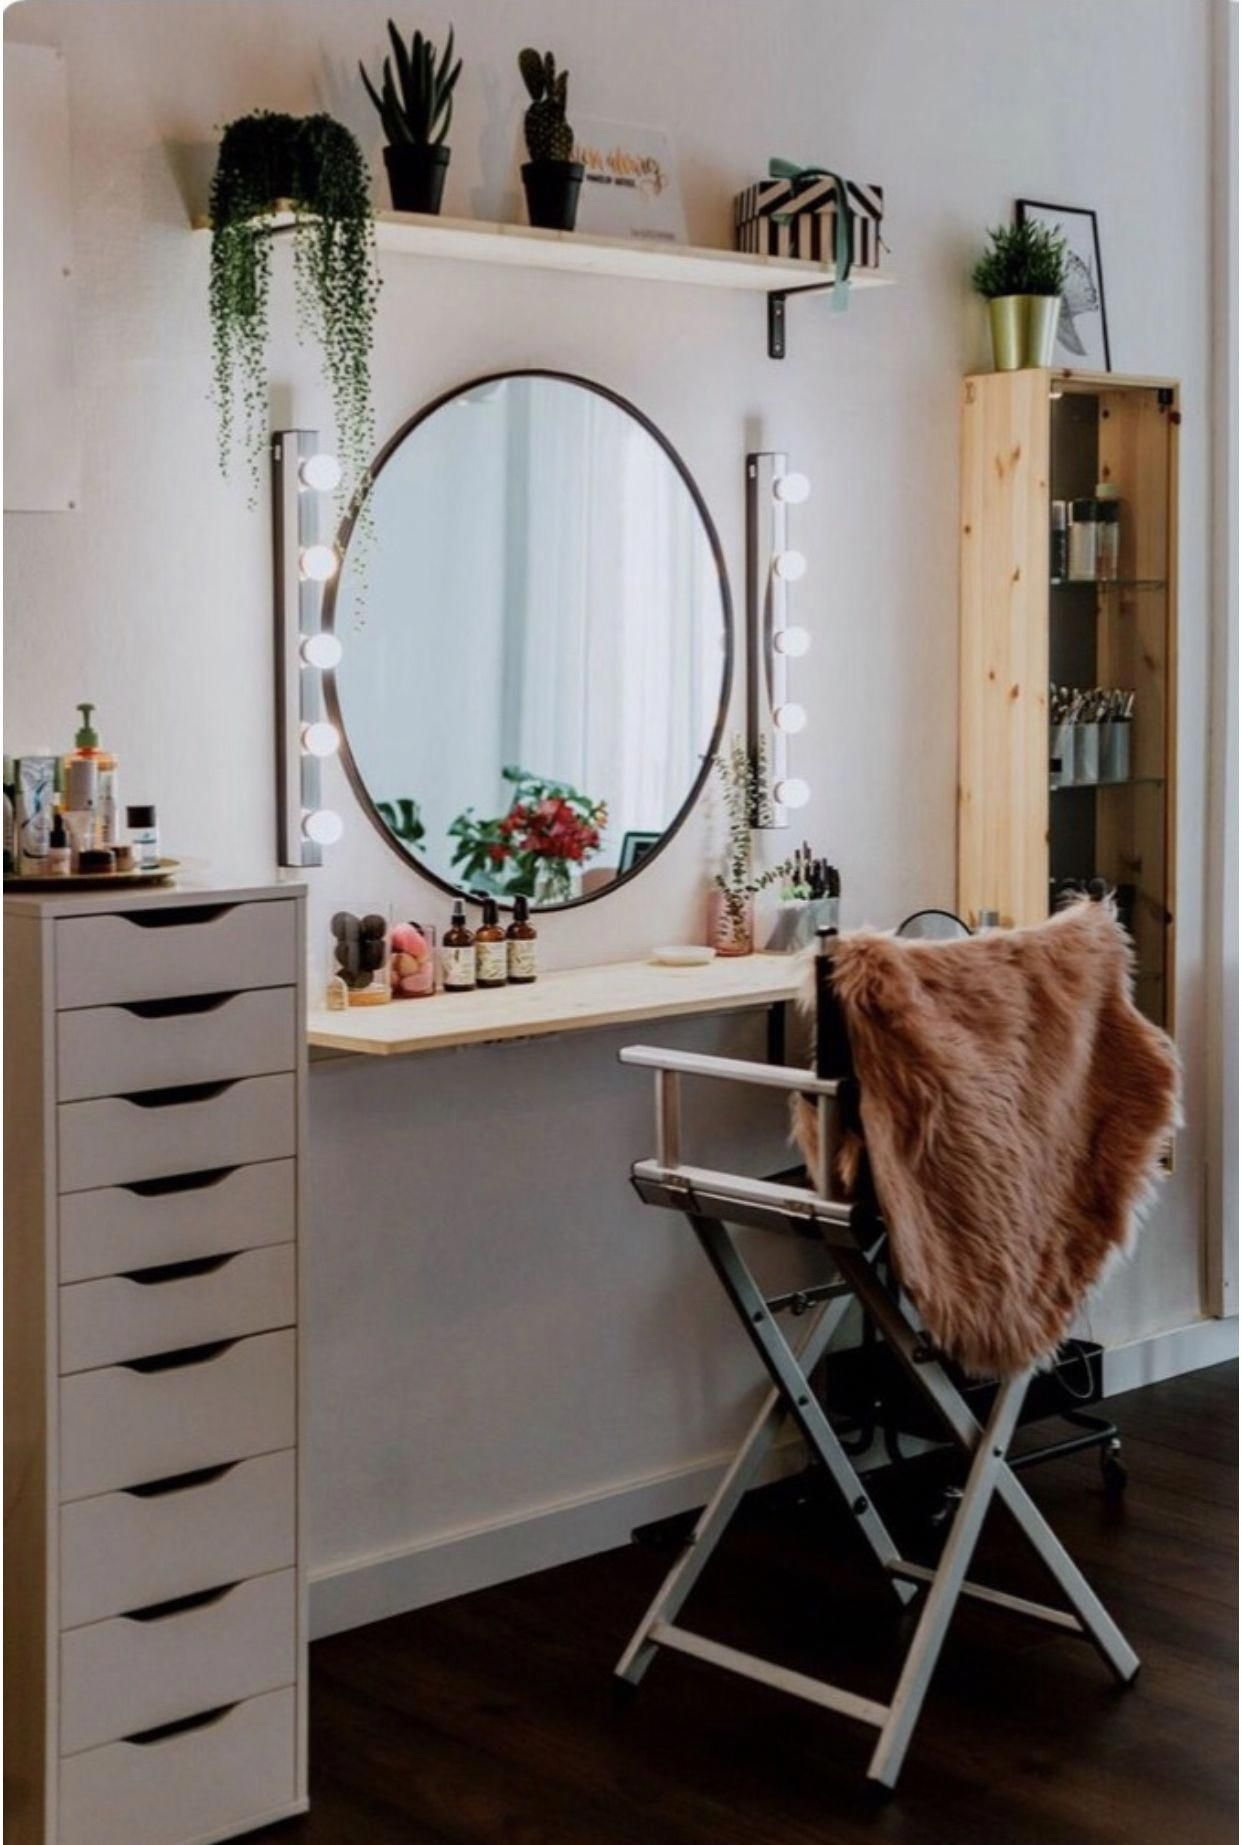 Bedroom Ideas Completely Creative Bedroom Decorating Aim 8600658578 Doityourselfbedroomsimple Small Room Design Makeup Room Diy Built In Dressing Table